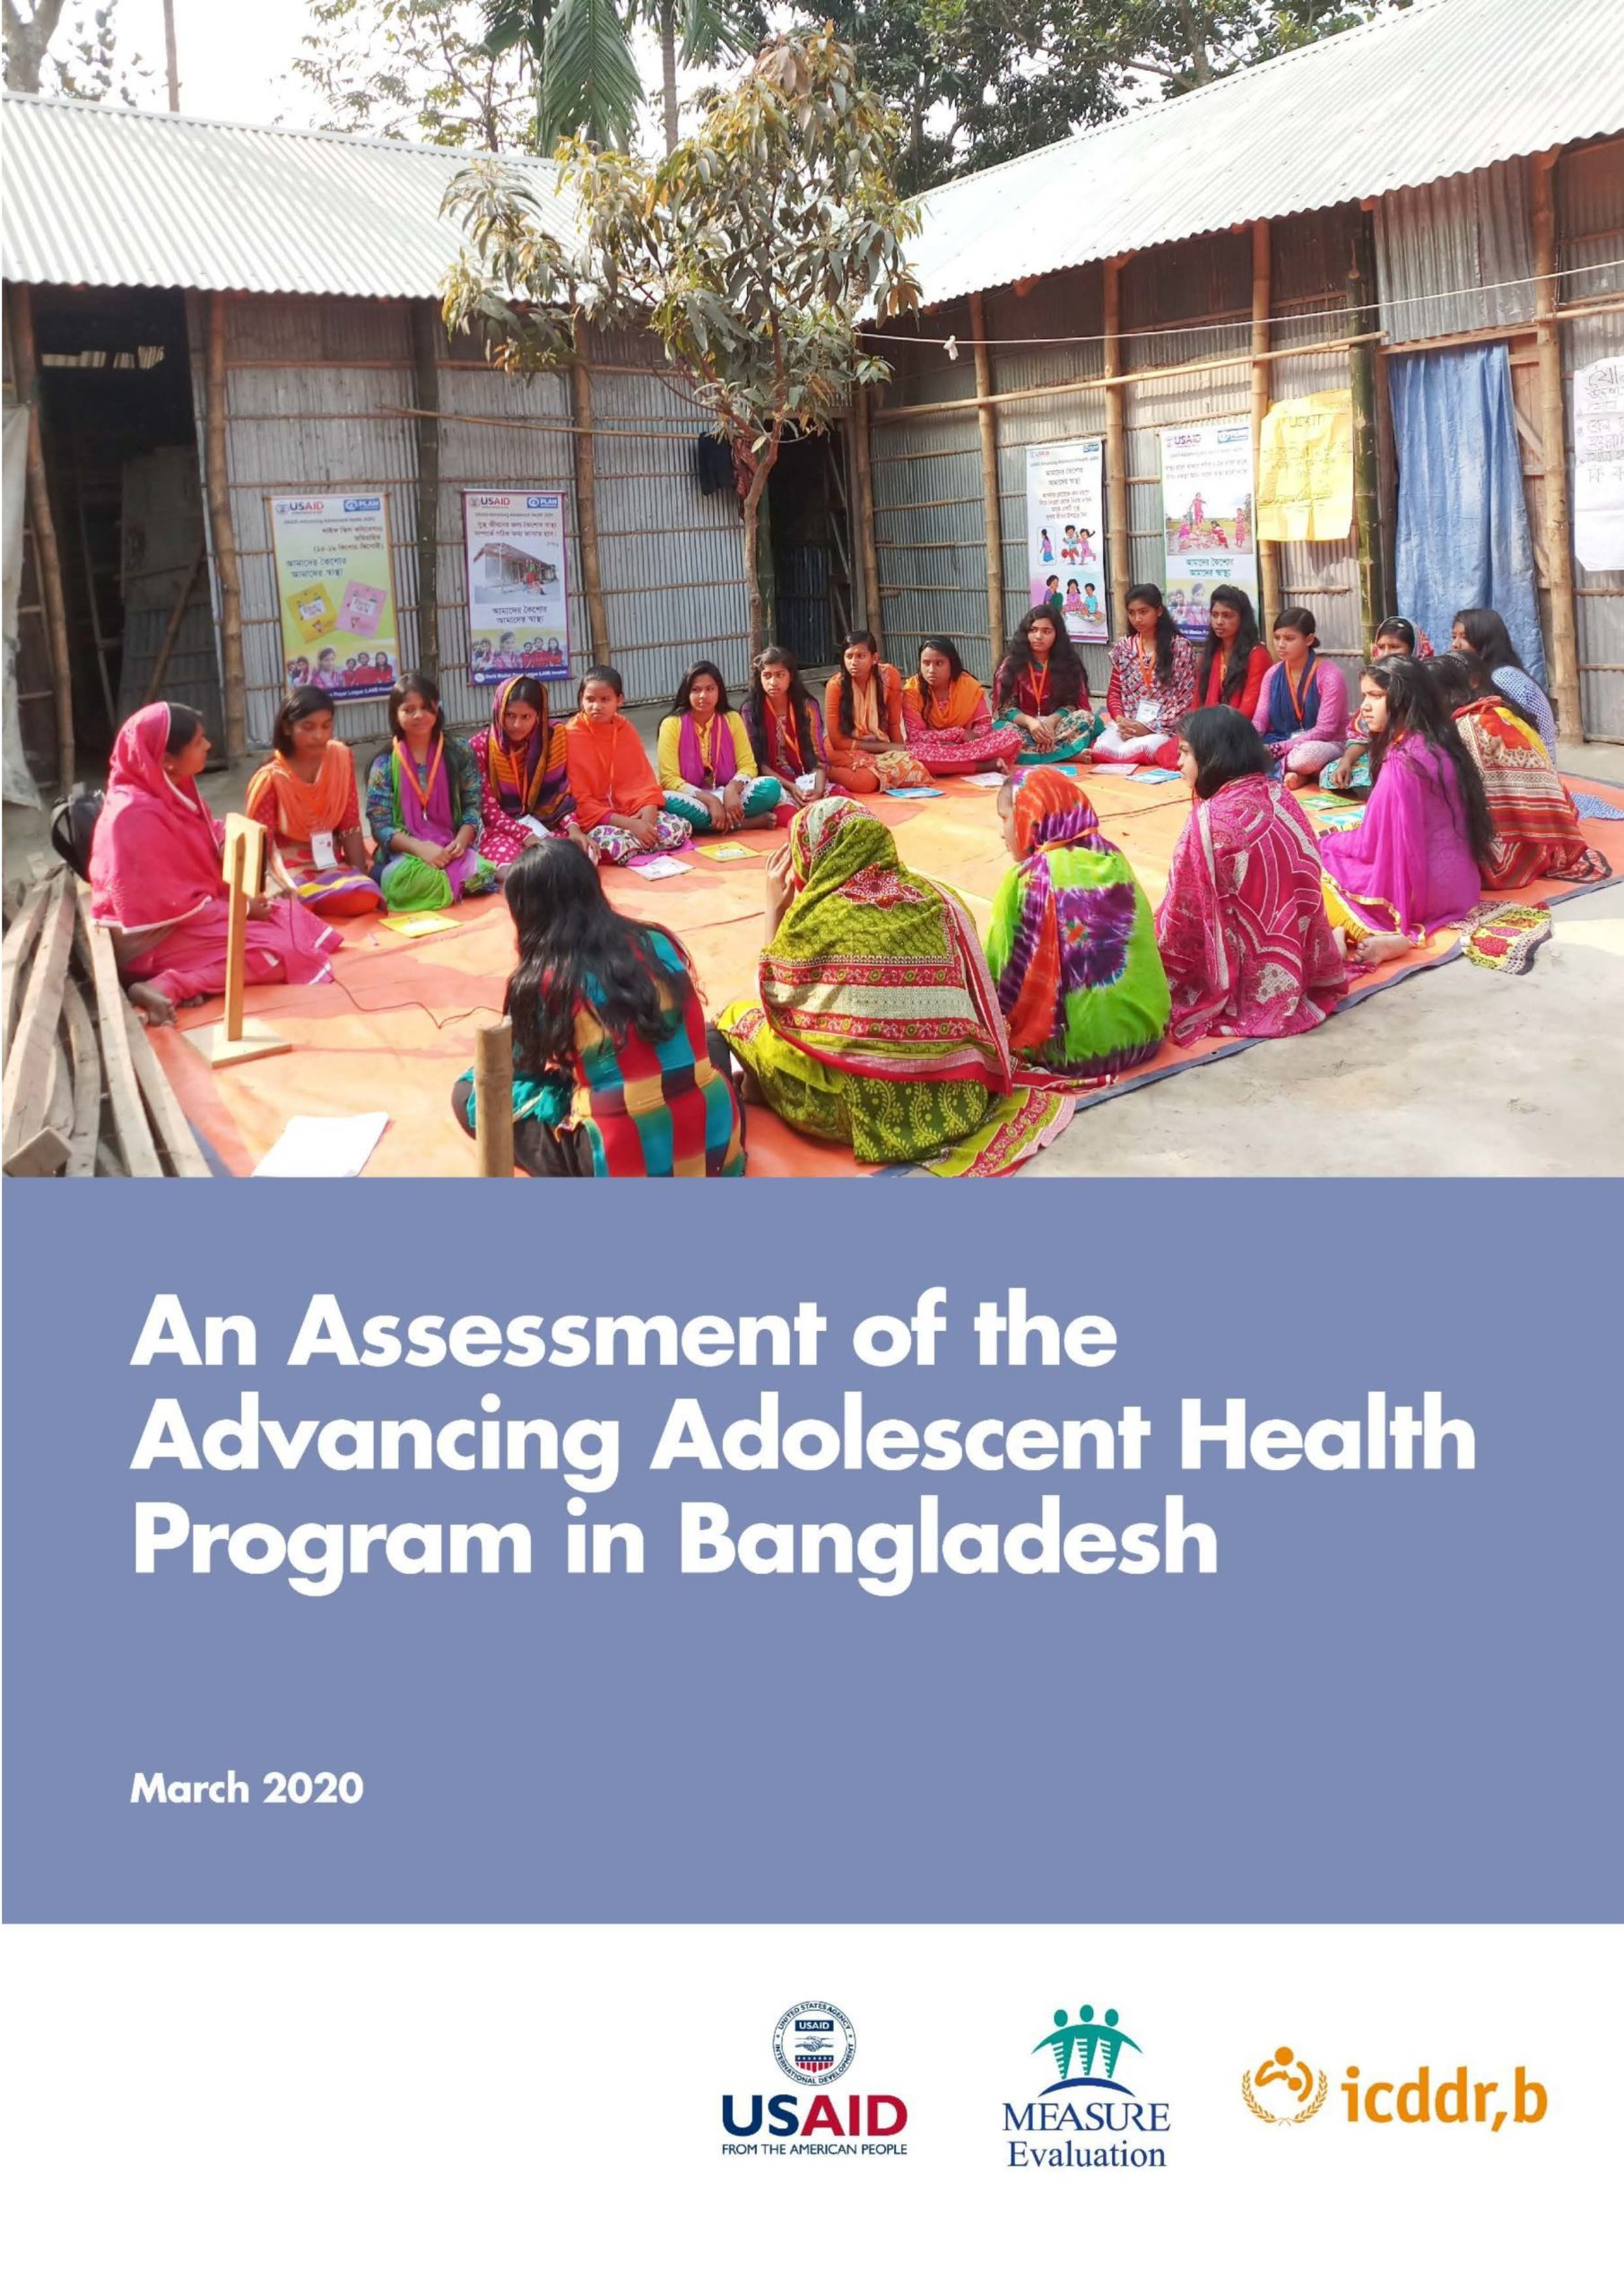 An Assessment of the Advancing Adolescent Health Program in Bangladesh